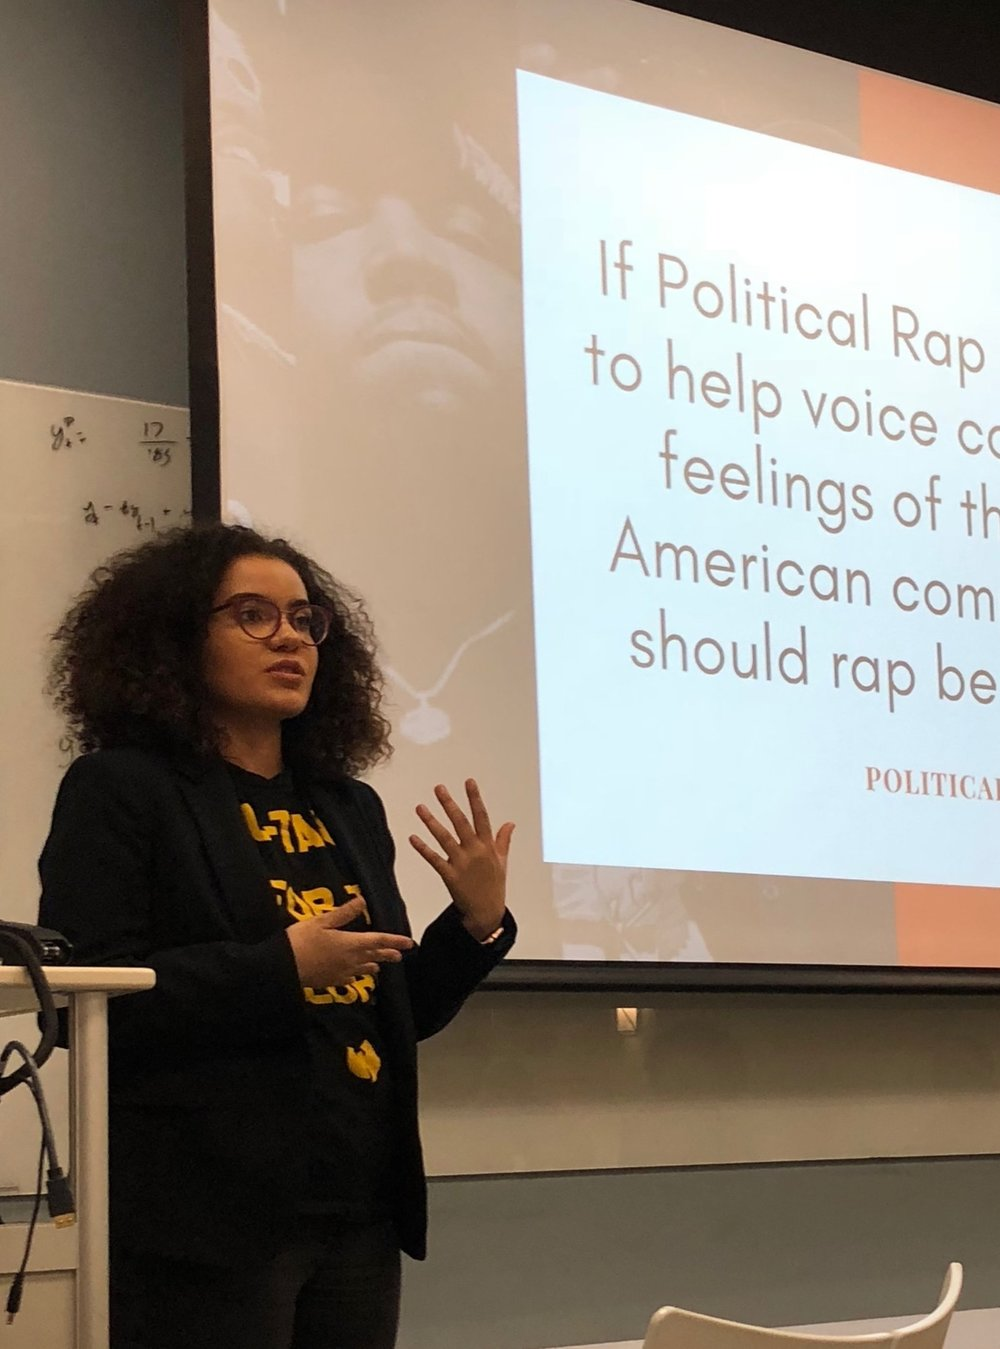 Our Mission - Ever since she was a child, she always knew that hip-hop would be a huge part of her life. Unfortunately in 2005, Alisha's father passed away. During the difficult time, Alisha, more than ever felt more connected with hip-hop. Not only is Sweatt passion-driven but, success just comes naturally to her because of who she as a woman. At the beginning of the year, Alisha made it her goal to live her life unapologetically and because of that she has been able to put her love for hip-hop into action. Hip Hop Makes Me Feel is an organization that teaches the youth the impact hip-hop has made on the world.Learn More